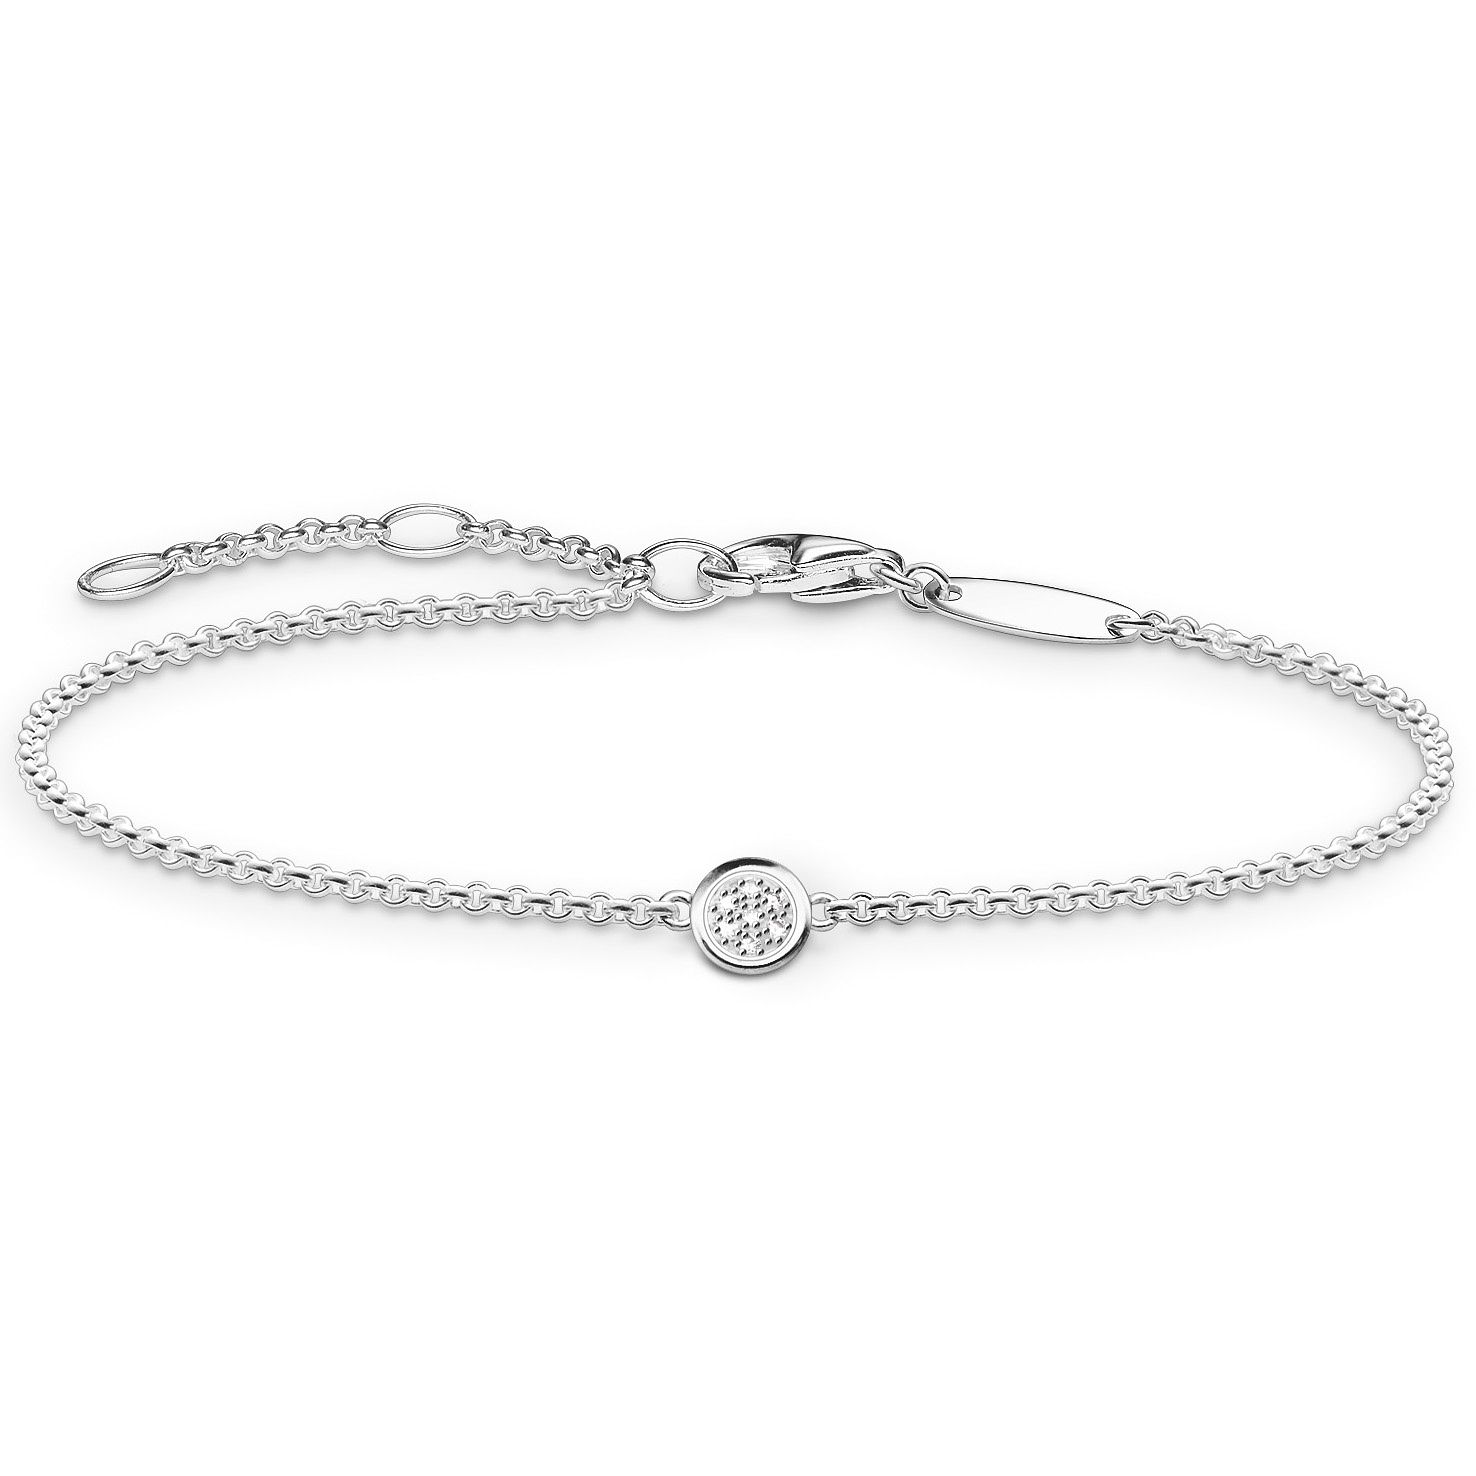 Thomas Sabo Sterling Silver Diamond Bracelet - Product number 5699320